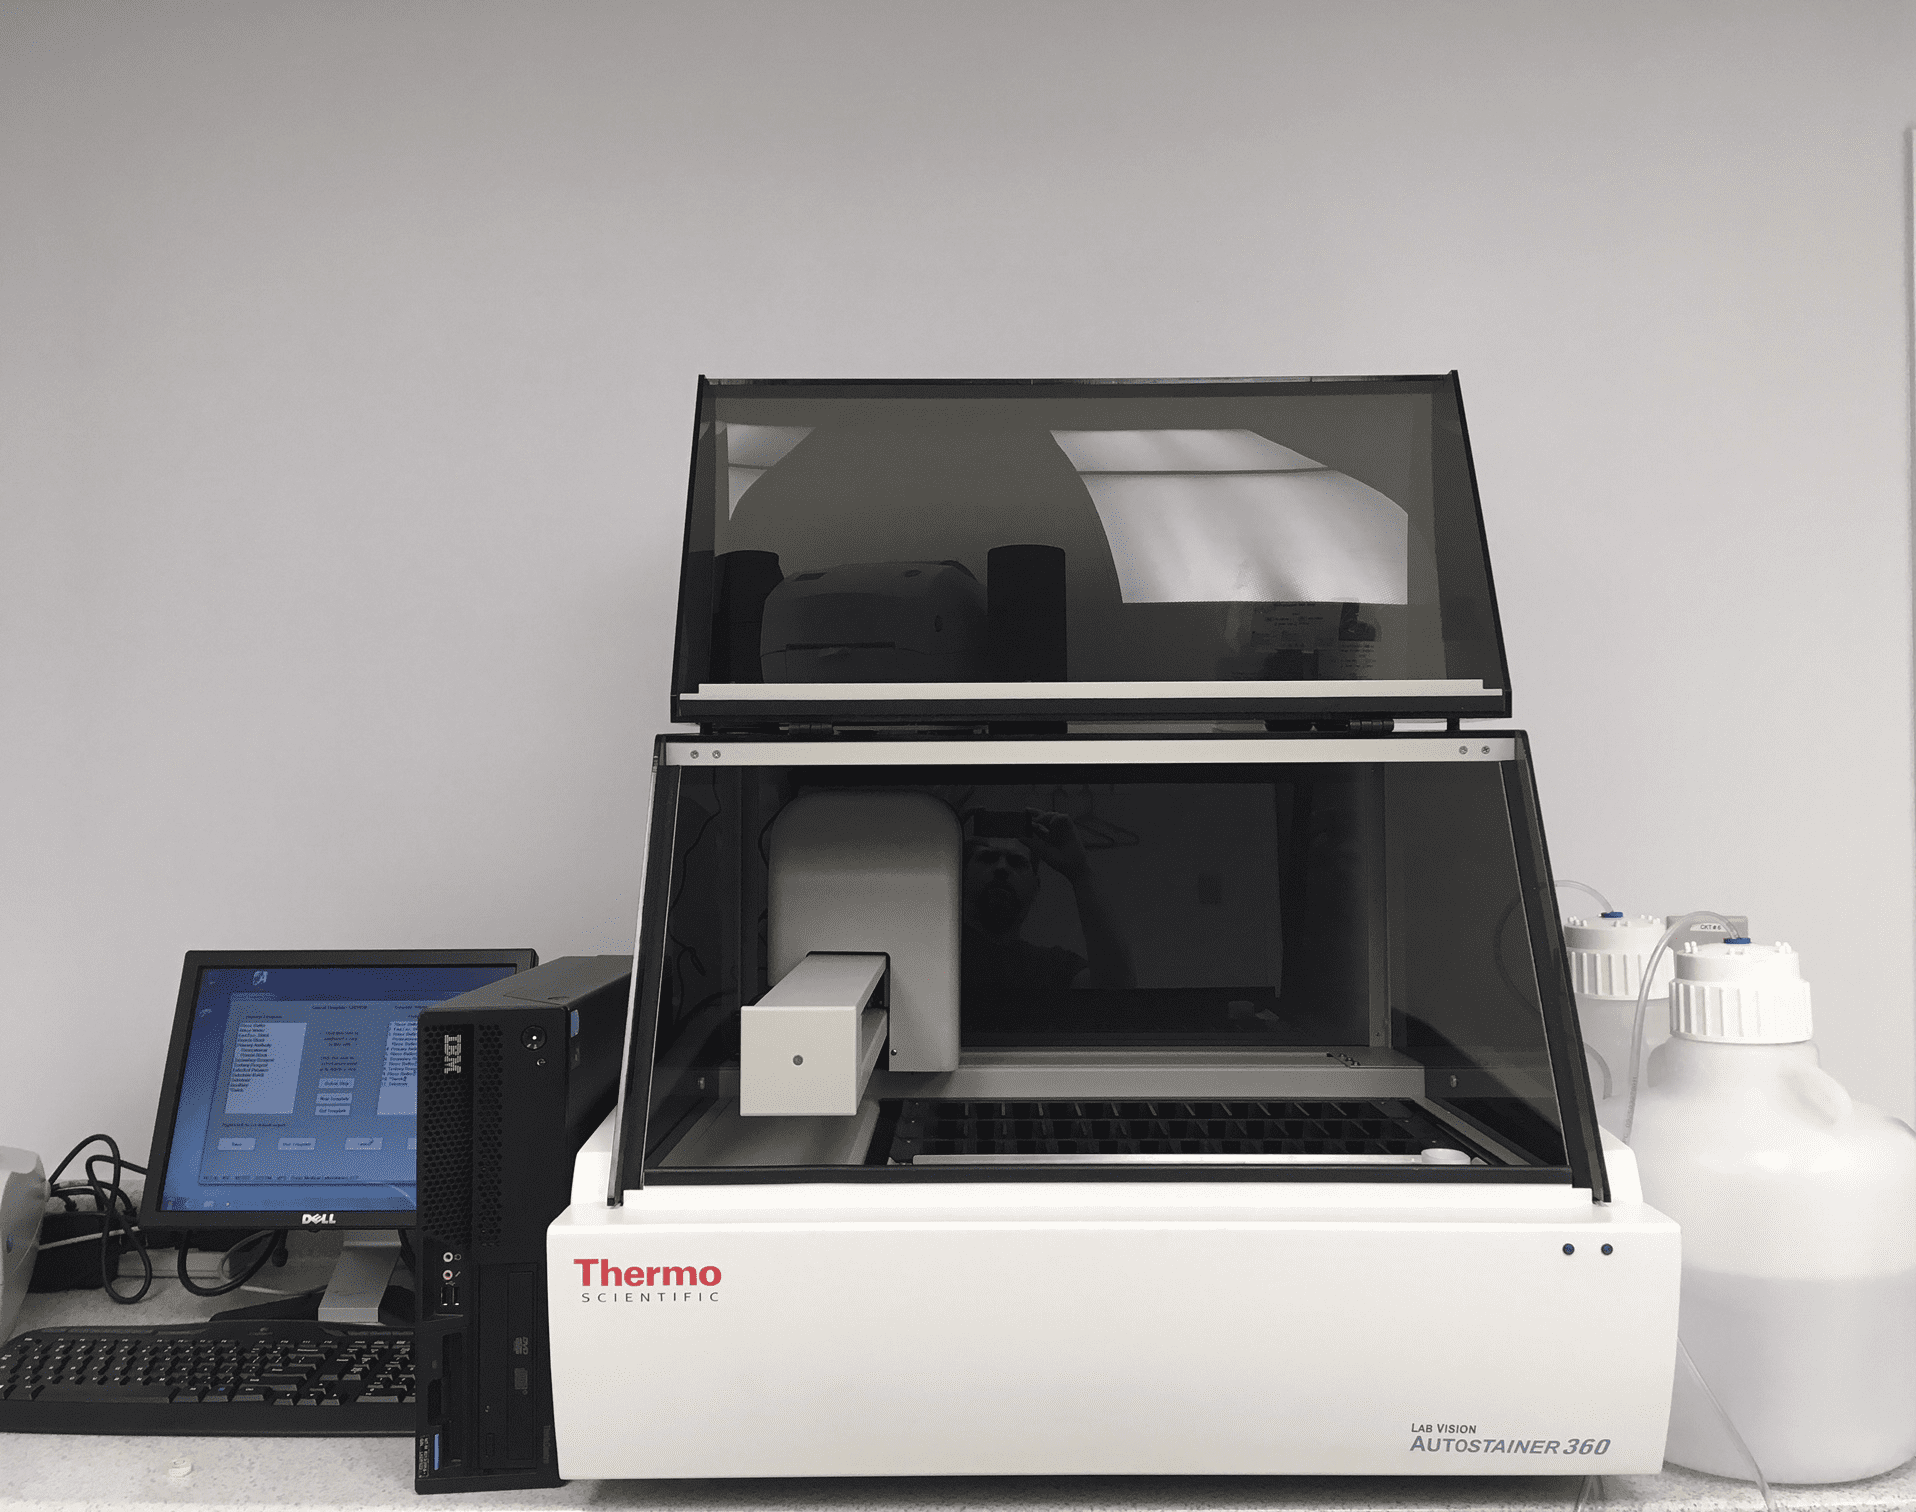 Leica, Dako and Thermo IHC Stainers with warranty!  Reagent and Set Up too!